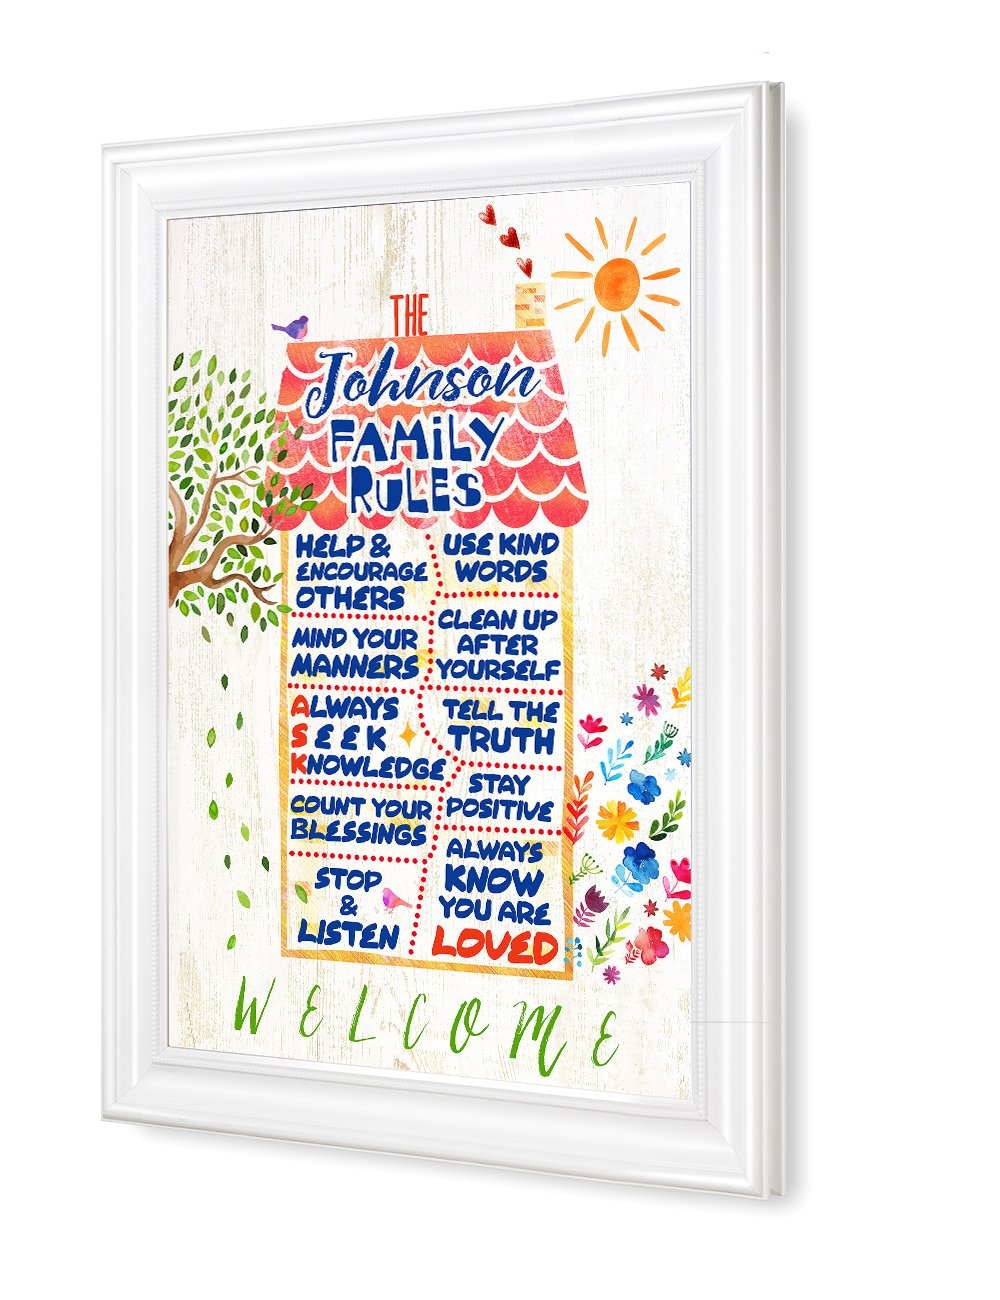 IPIC - ''Our Family Rules'' Personalized Framed Artwork for Home, Housewarming, Childrens' rooms; Picture size: 30x20'', Framed Size: 33x23x1.25''